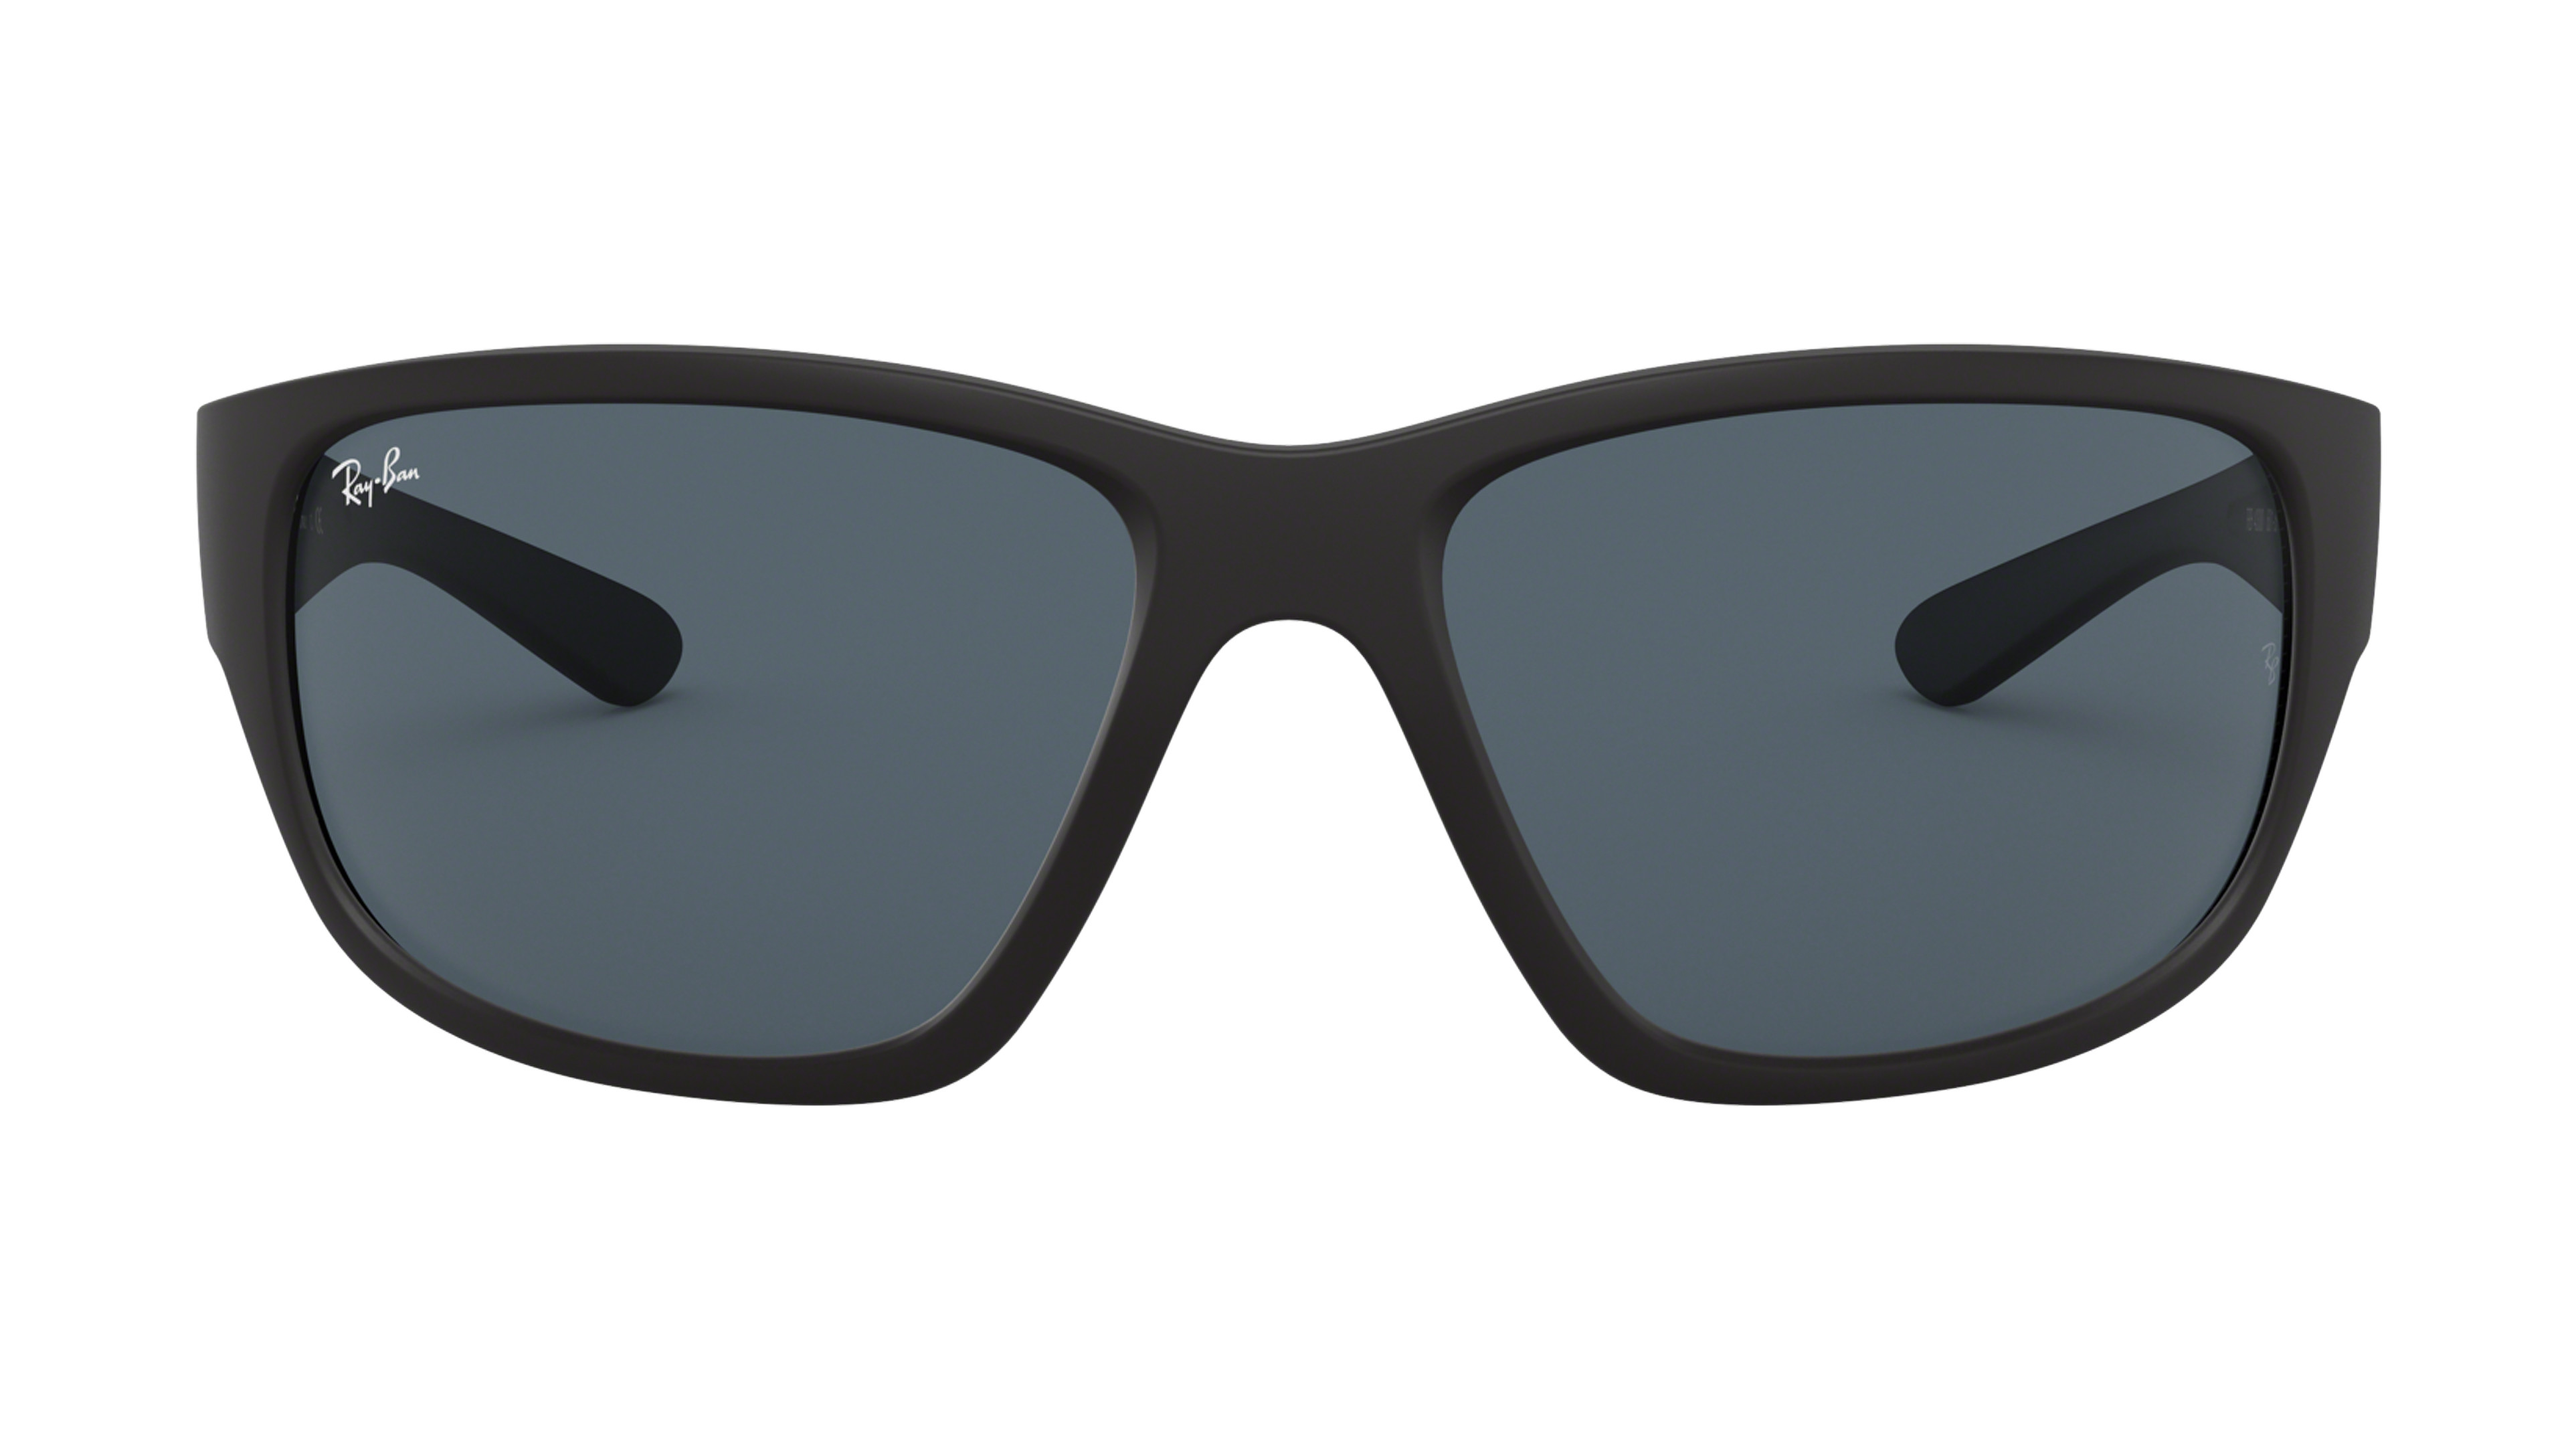 8056597070867-front-Ray-Ban-Sonnenbrille-0RB4300-601SR5